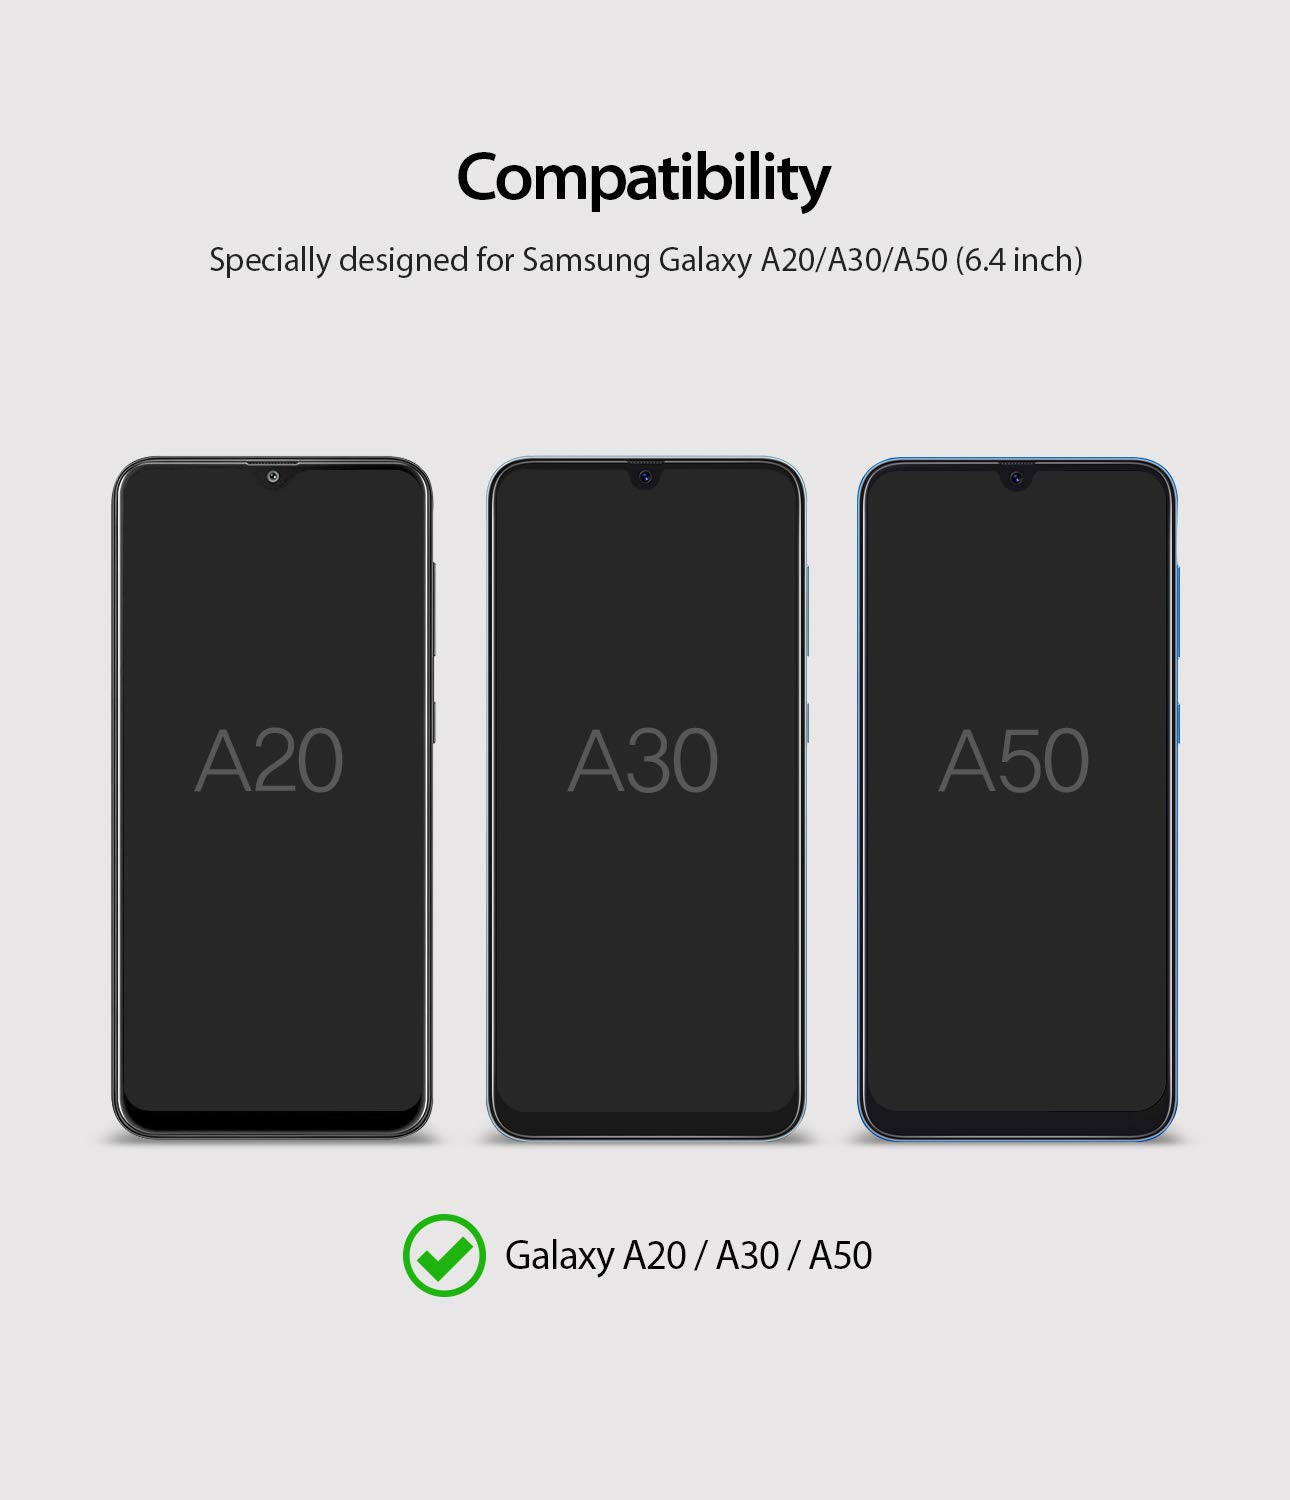 compatible with galaxy a20 / a50 / a30